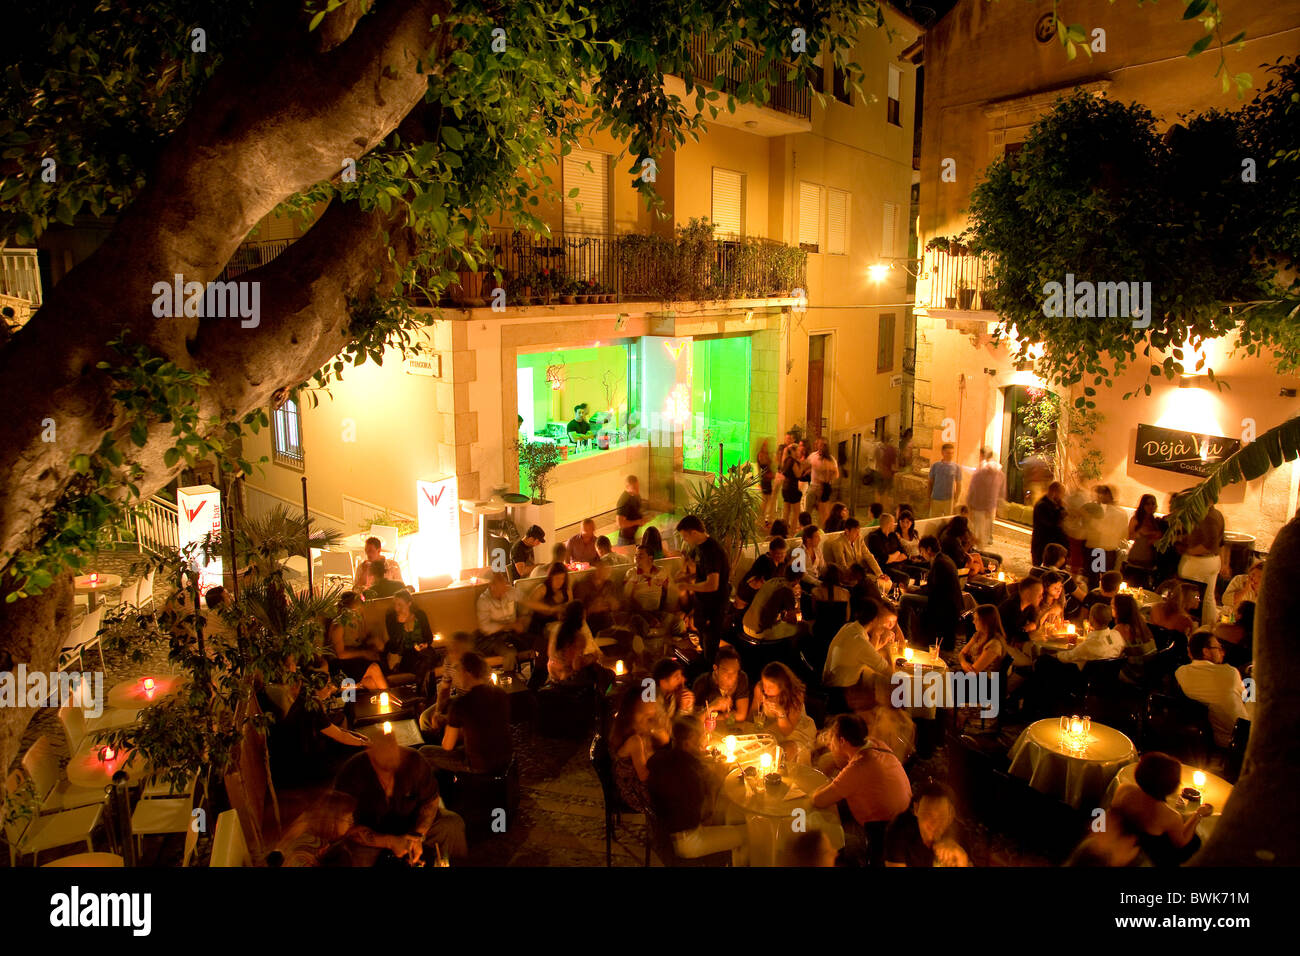 Deja Vu, a cocktail bar on Piazza Garibaldi square, nightlife in Taormina, province of Messina, Sicily, Italy, Europe - Stock Image